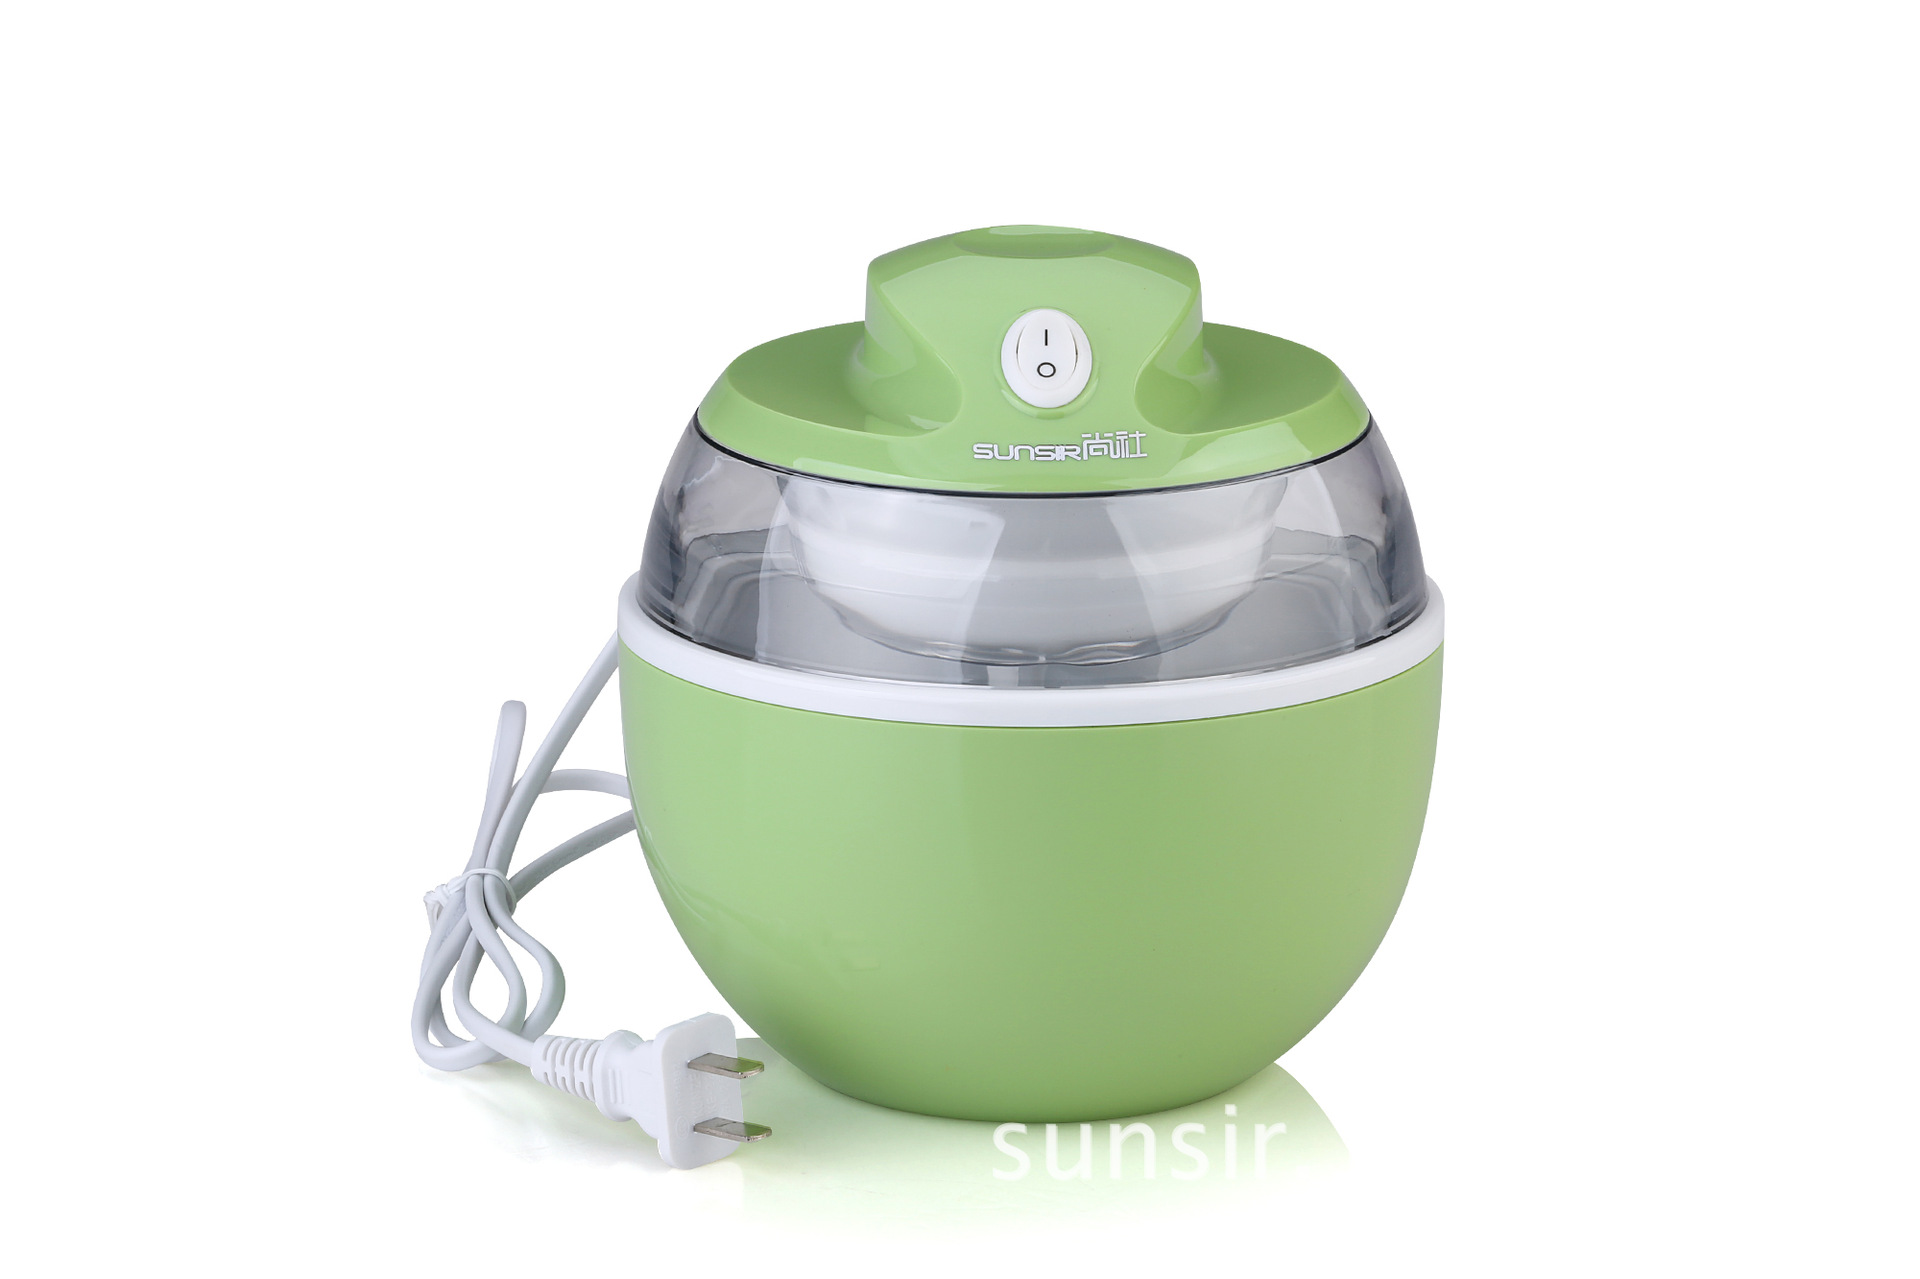 Home electric portable mini ice cream 7W machine automatic fruit ice cream maker home appliances green fully automatic diy fruit ice cream machine green